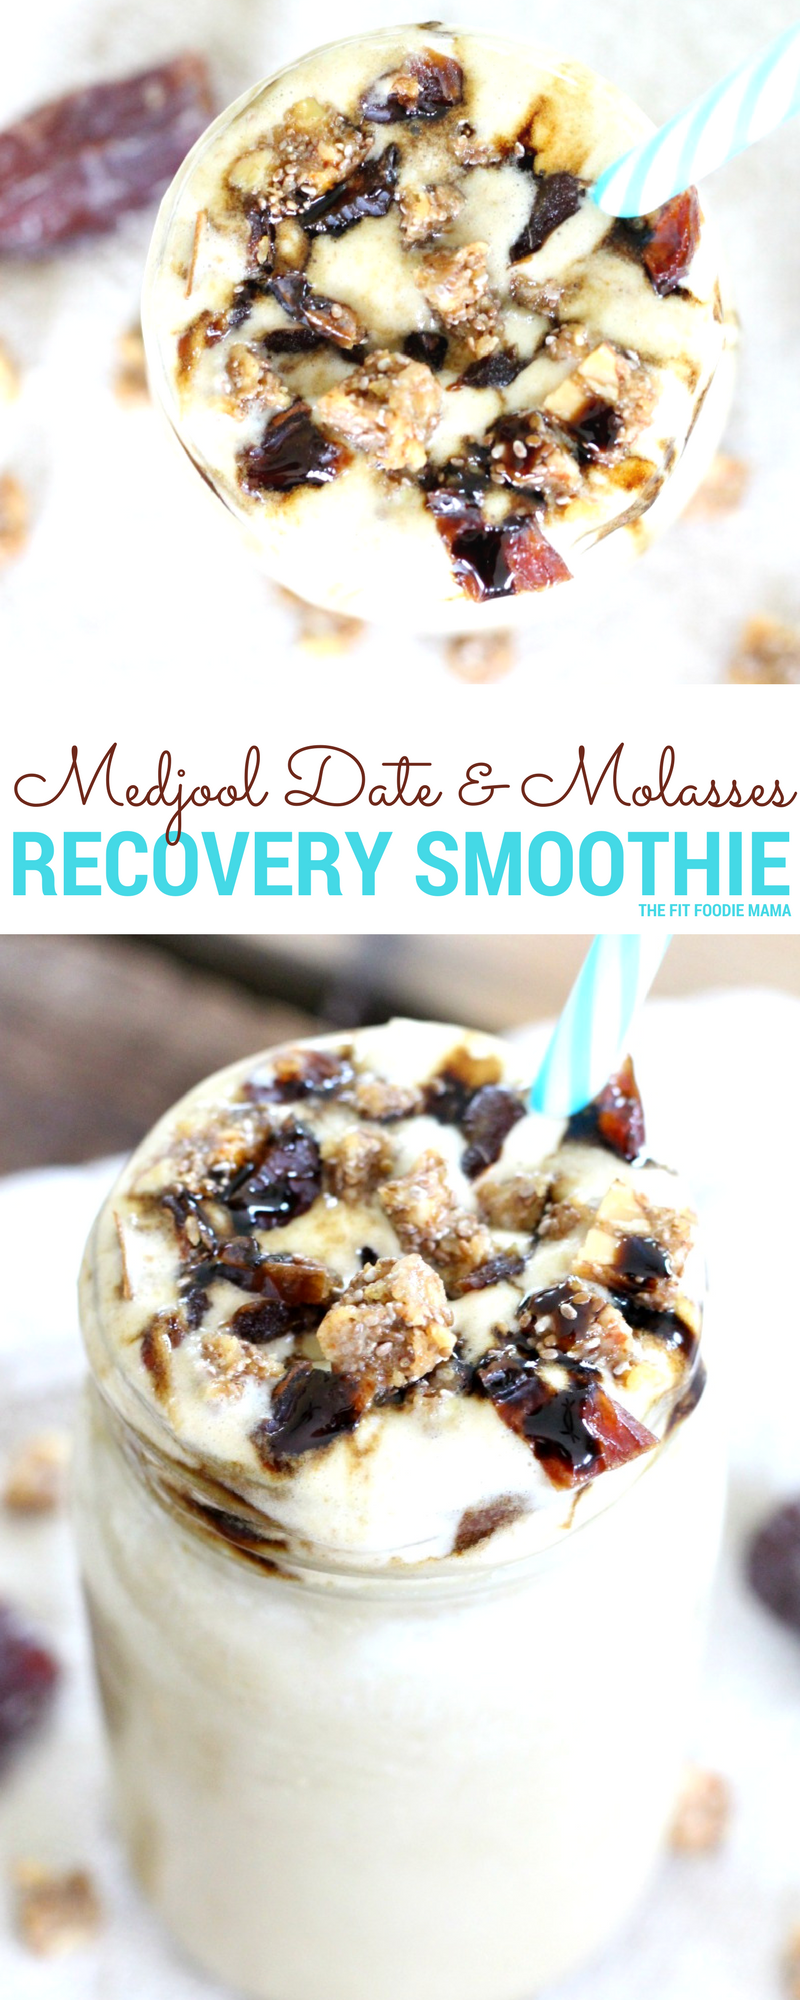 Give your body the vitamins and minerals it needs with this Medjool Date & Black Strap Molasses Recovery Smoothie! It's gluten free, dairy free, vegan and allergy friendly.